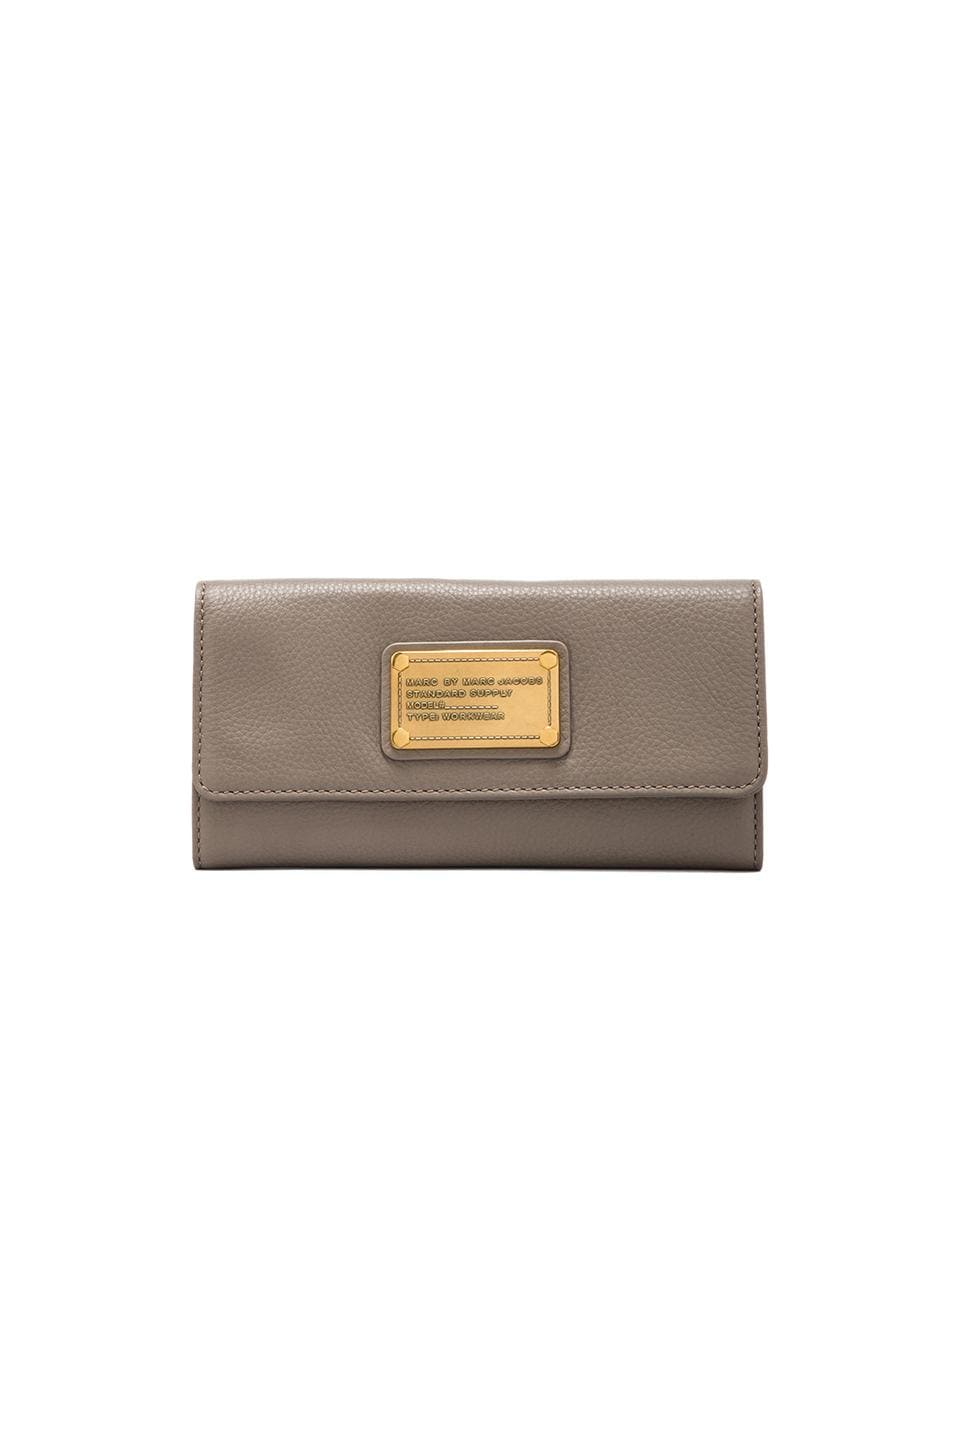 Marc by Marc Jacobs Classic Q Long Trifold in Warm Zinc